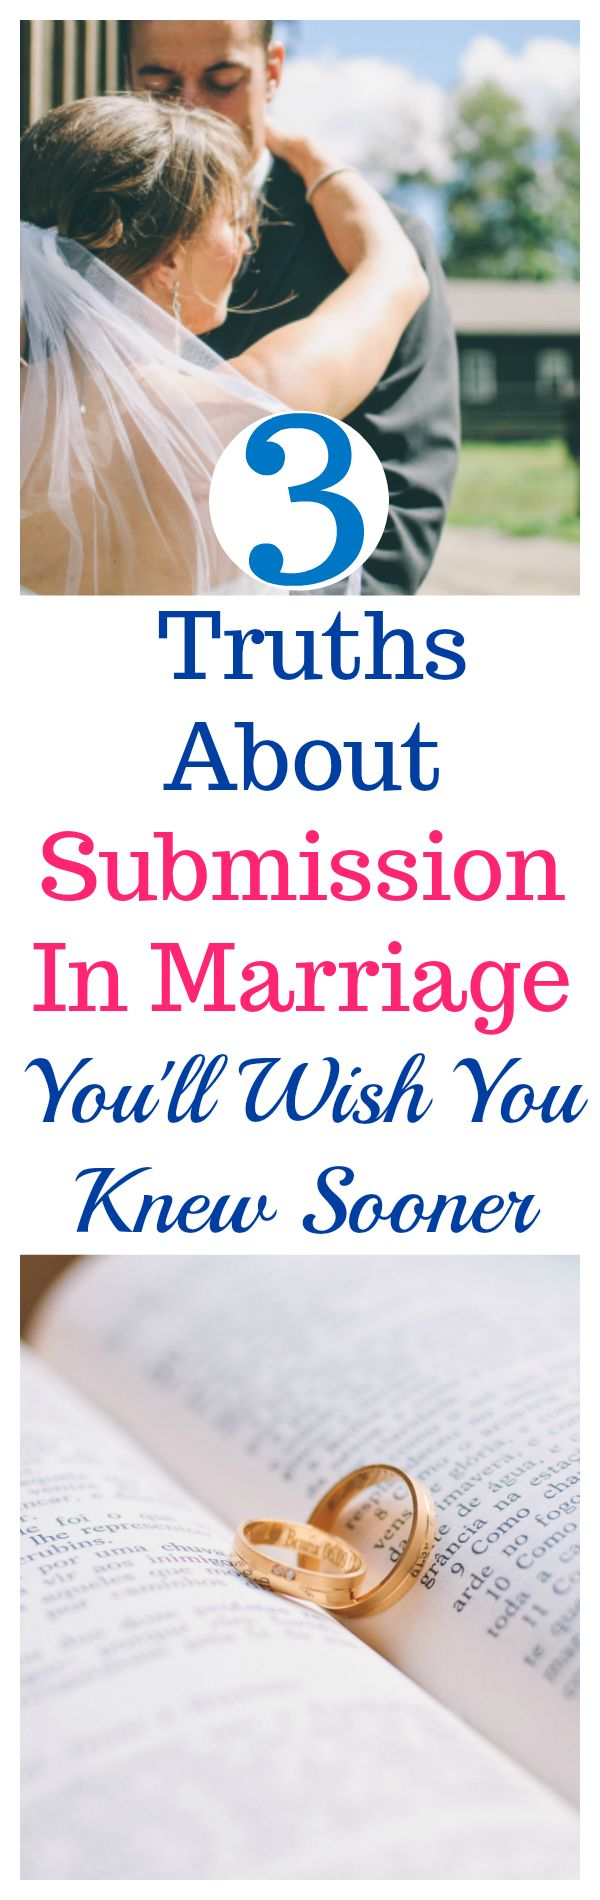 Totally LOVED these 3 truths about submission in marriage! I'm SO glad I found them!They changed my life! Submission in marriage as a Biblical wife can be SO great. Definitely pinning! #love #marriage #relationship